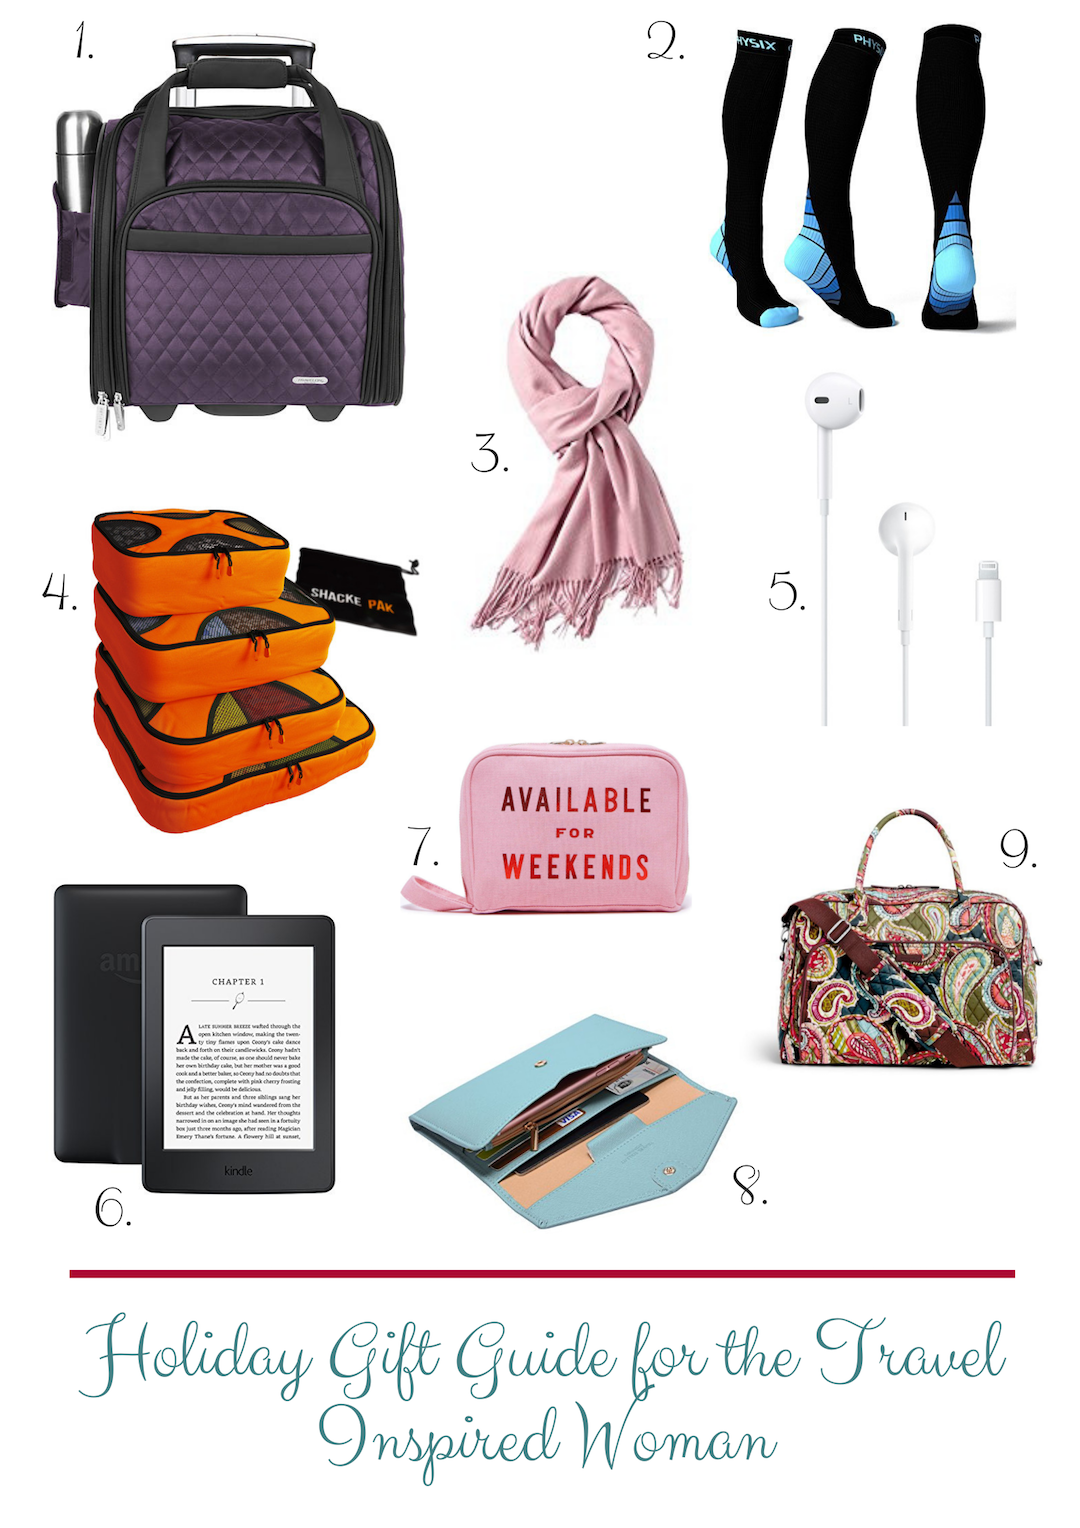 Holiday Gift Guide for the Travel Inspired Woman